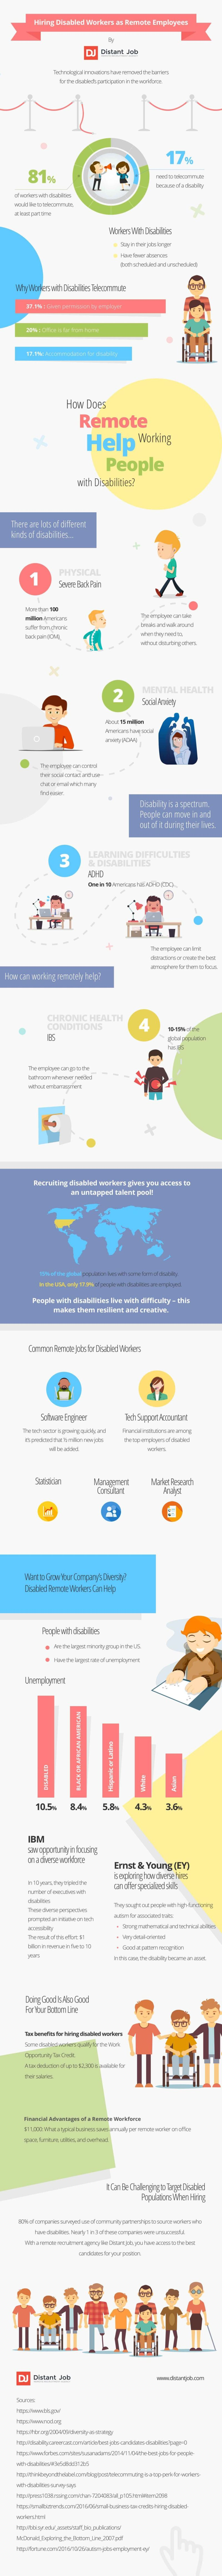 Infographic: Hiring Disabled Workers as Remote Employees